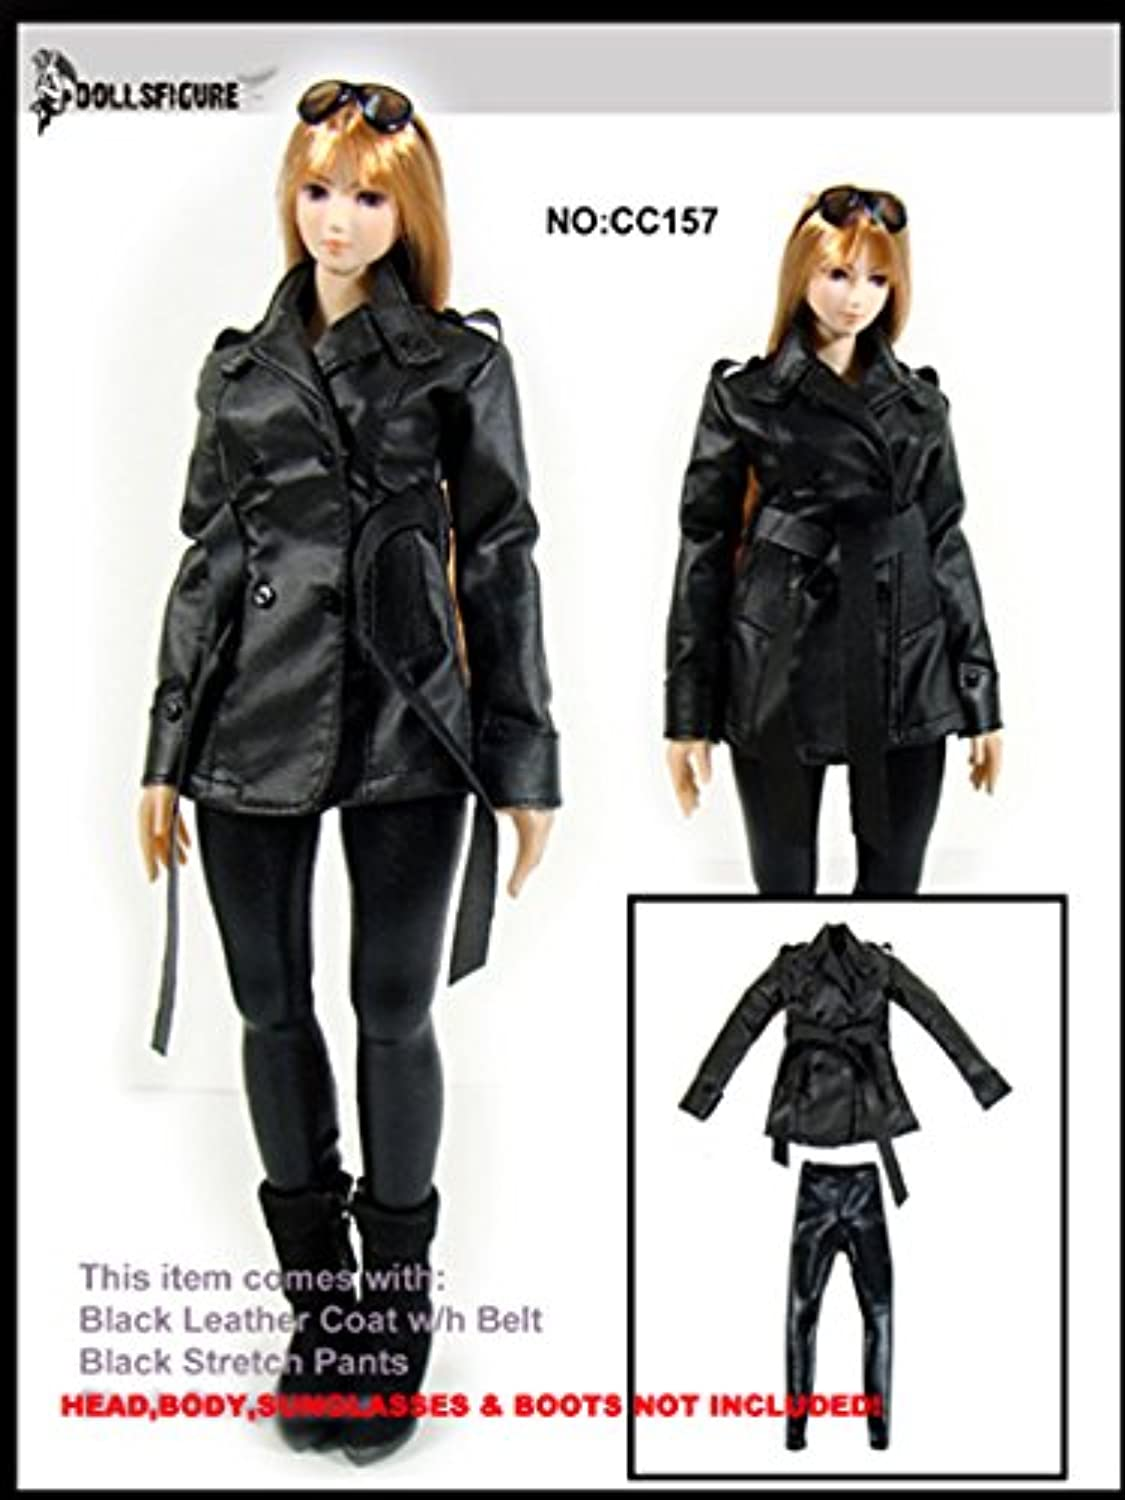 Artcreator_BM 1:6 DOLLSFIGURE Female Trendy Leather Coat,Pants Set(Ver.1)cc157